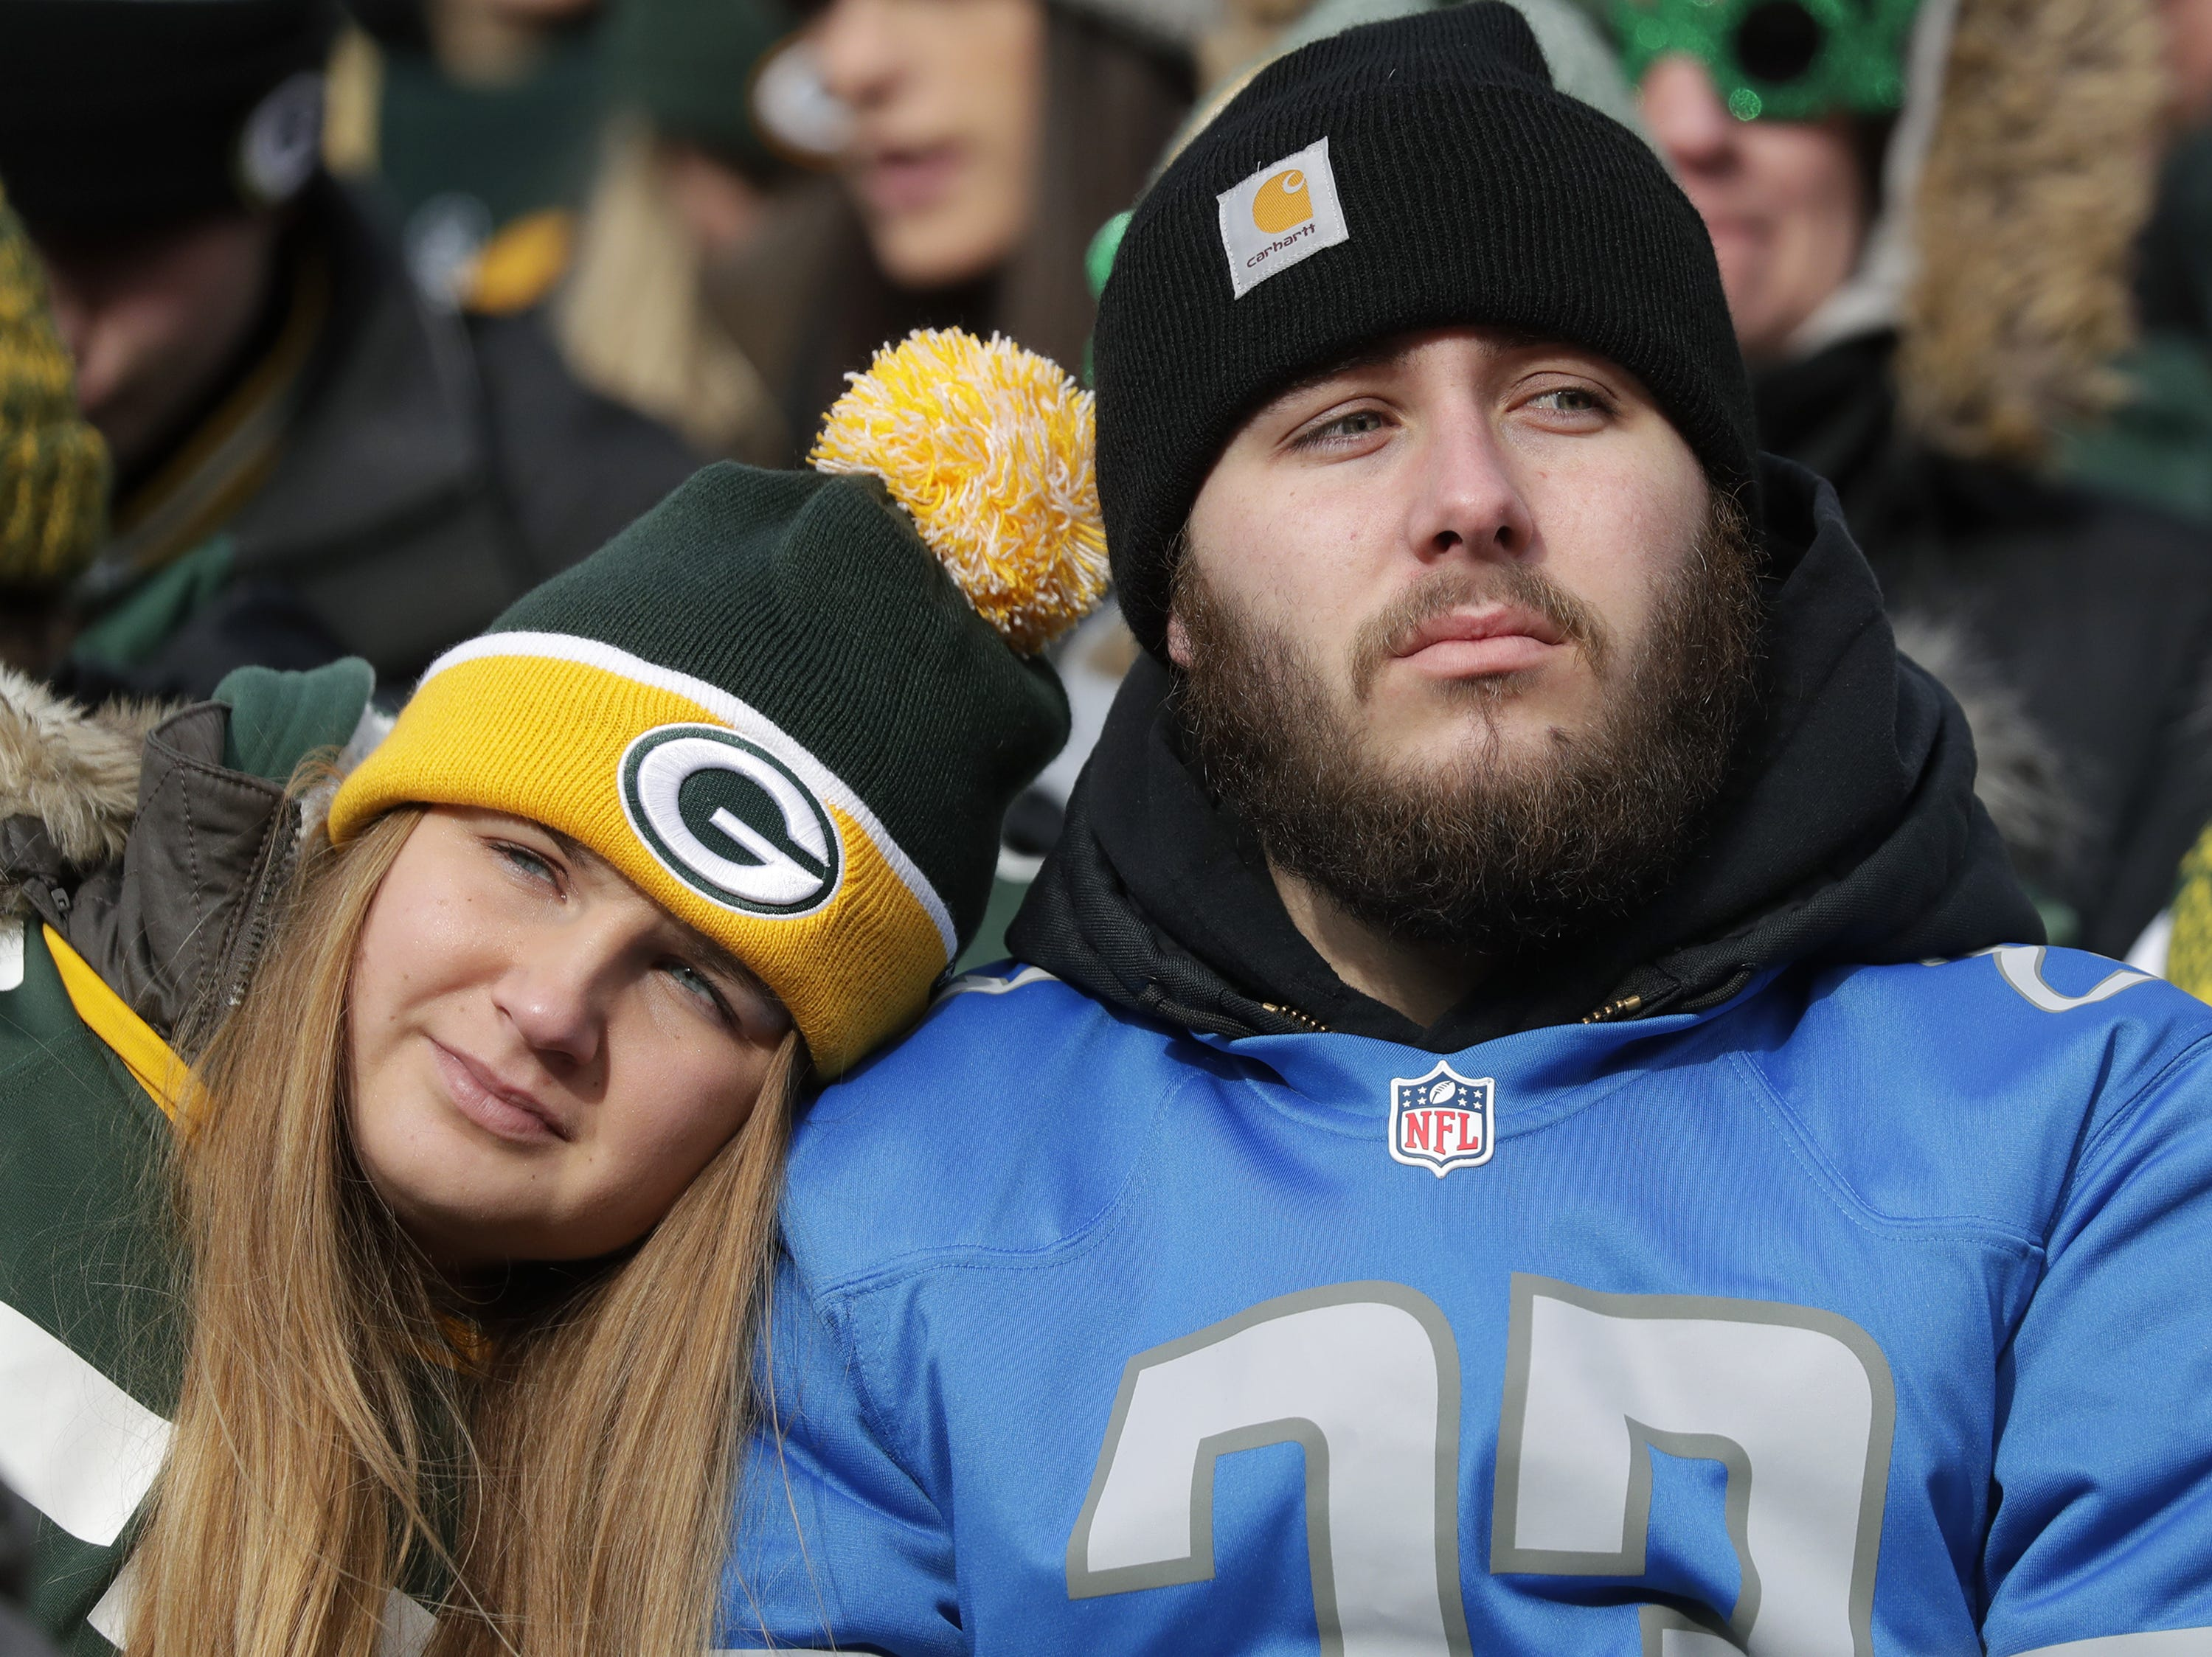 The Green Bay Packers take on the Detroit Lions during their football game on Sunday, December 30, 2018, at Lambeau Field in Green Bay, Wis. Detroit defeated Green Bay 31 to 0. Wm. Glasheen/USA TODAY NETWORK-Wisconsin.